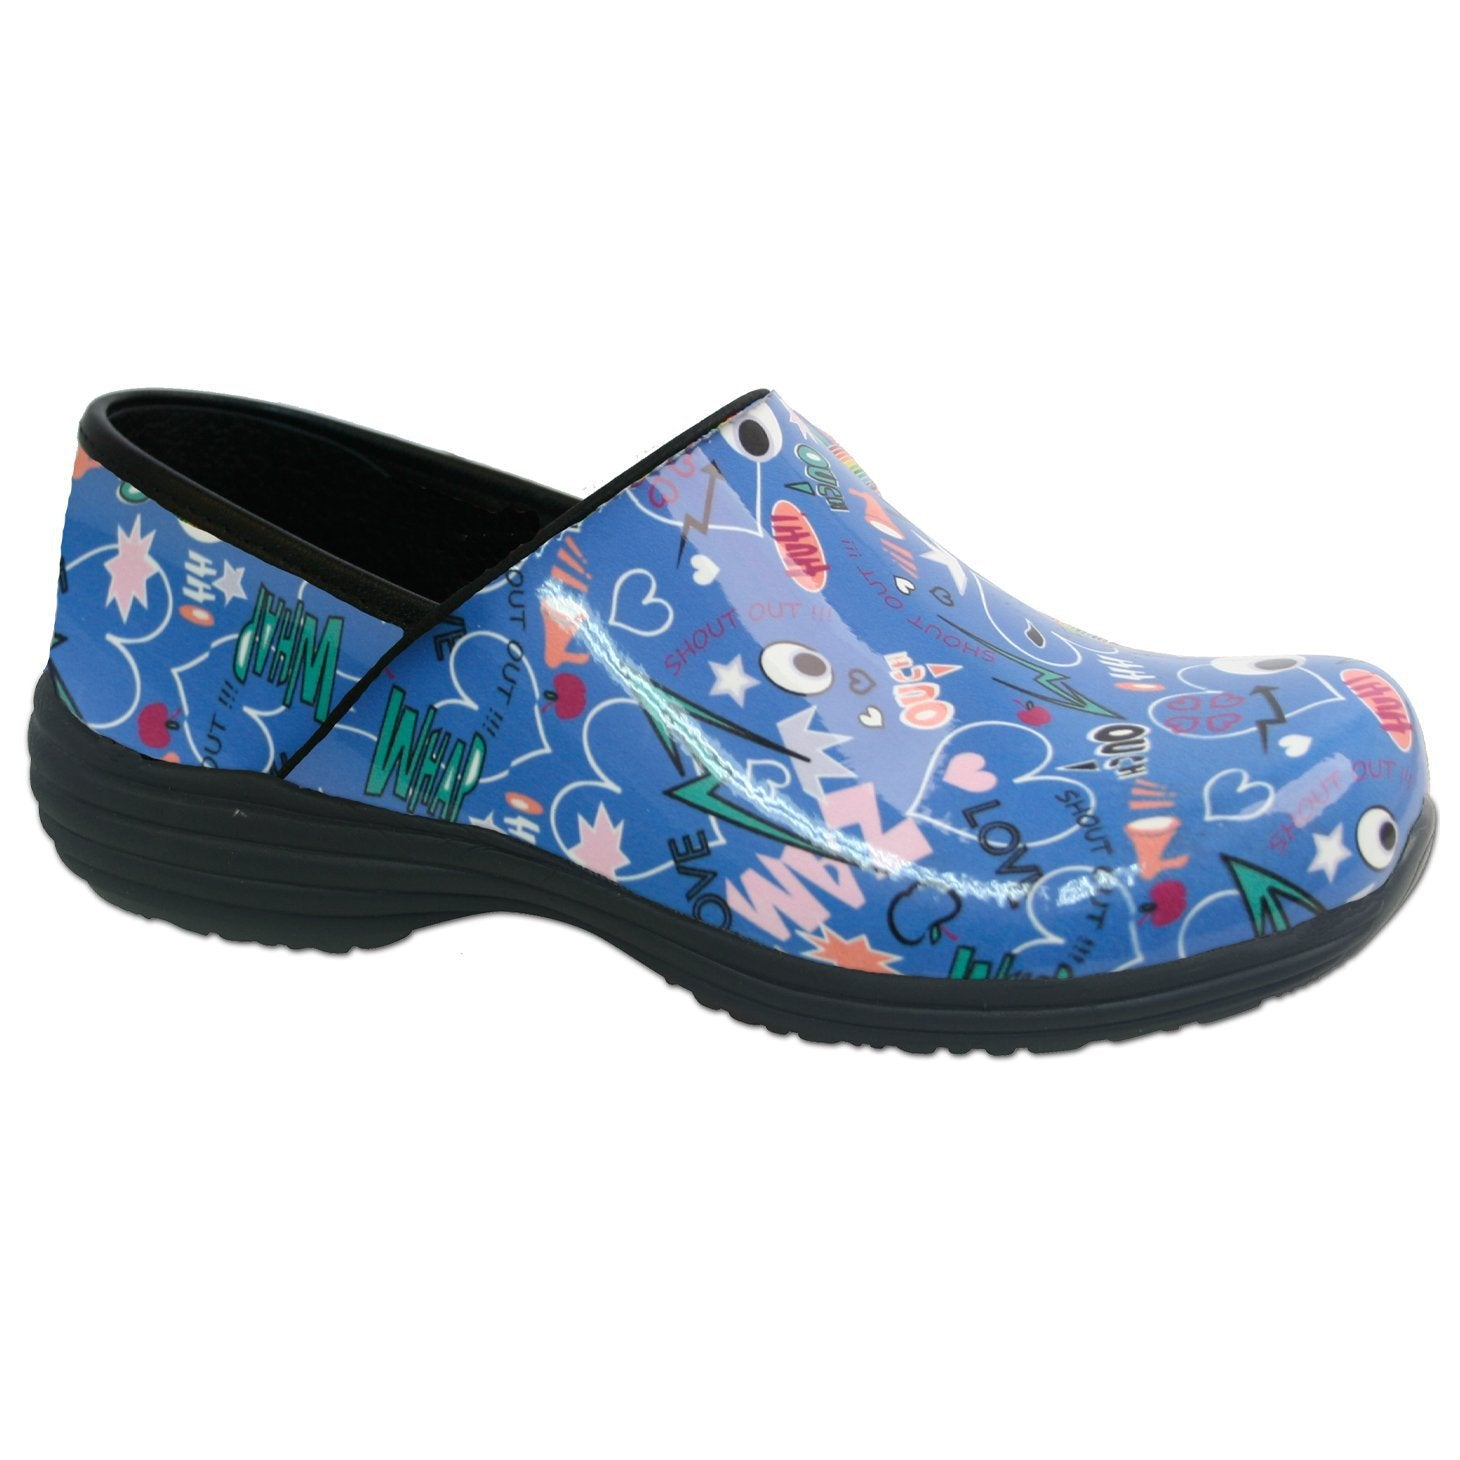 Sanita Lovestruck Women's Closed Back Clog